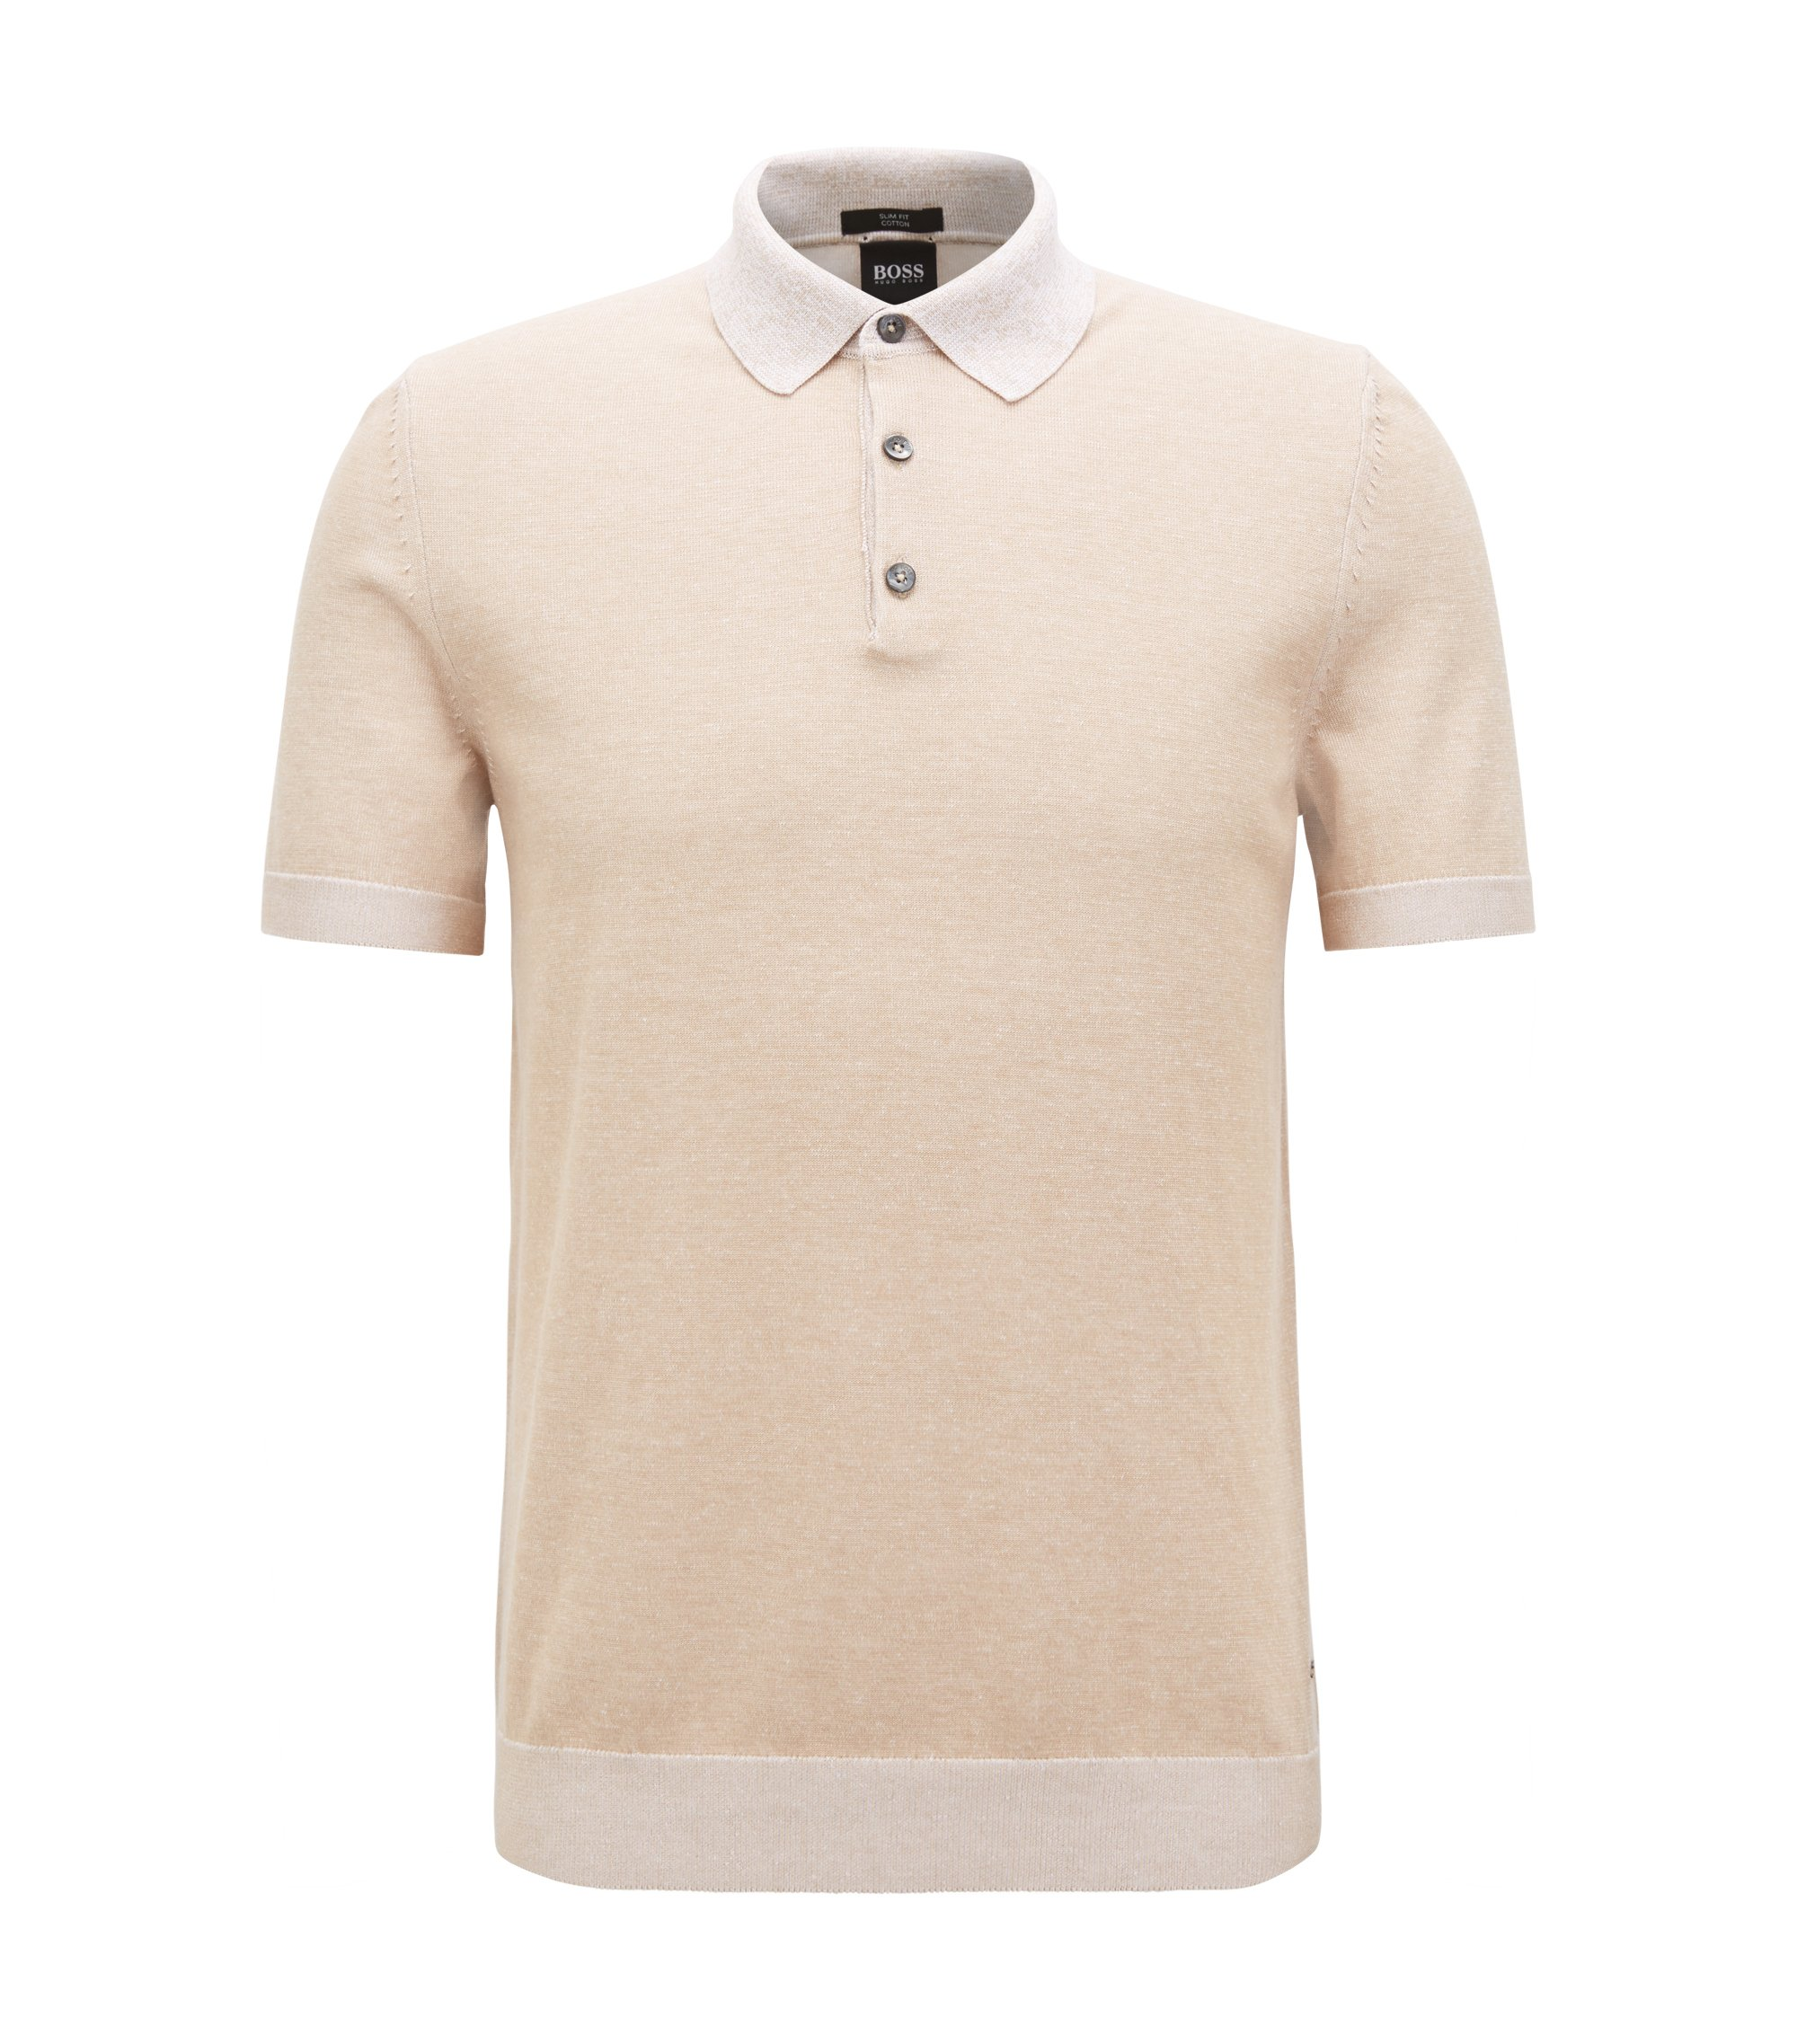 Colorblocked Cotton Polo Shirt, Slim Fit | Delio, Natural